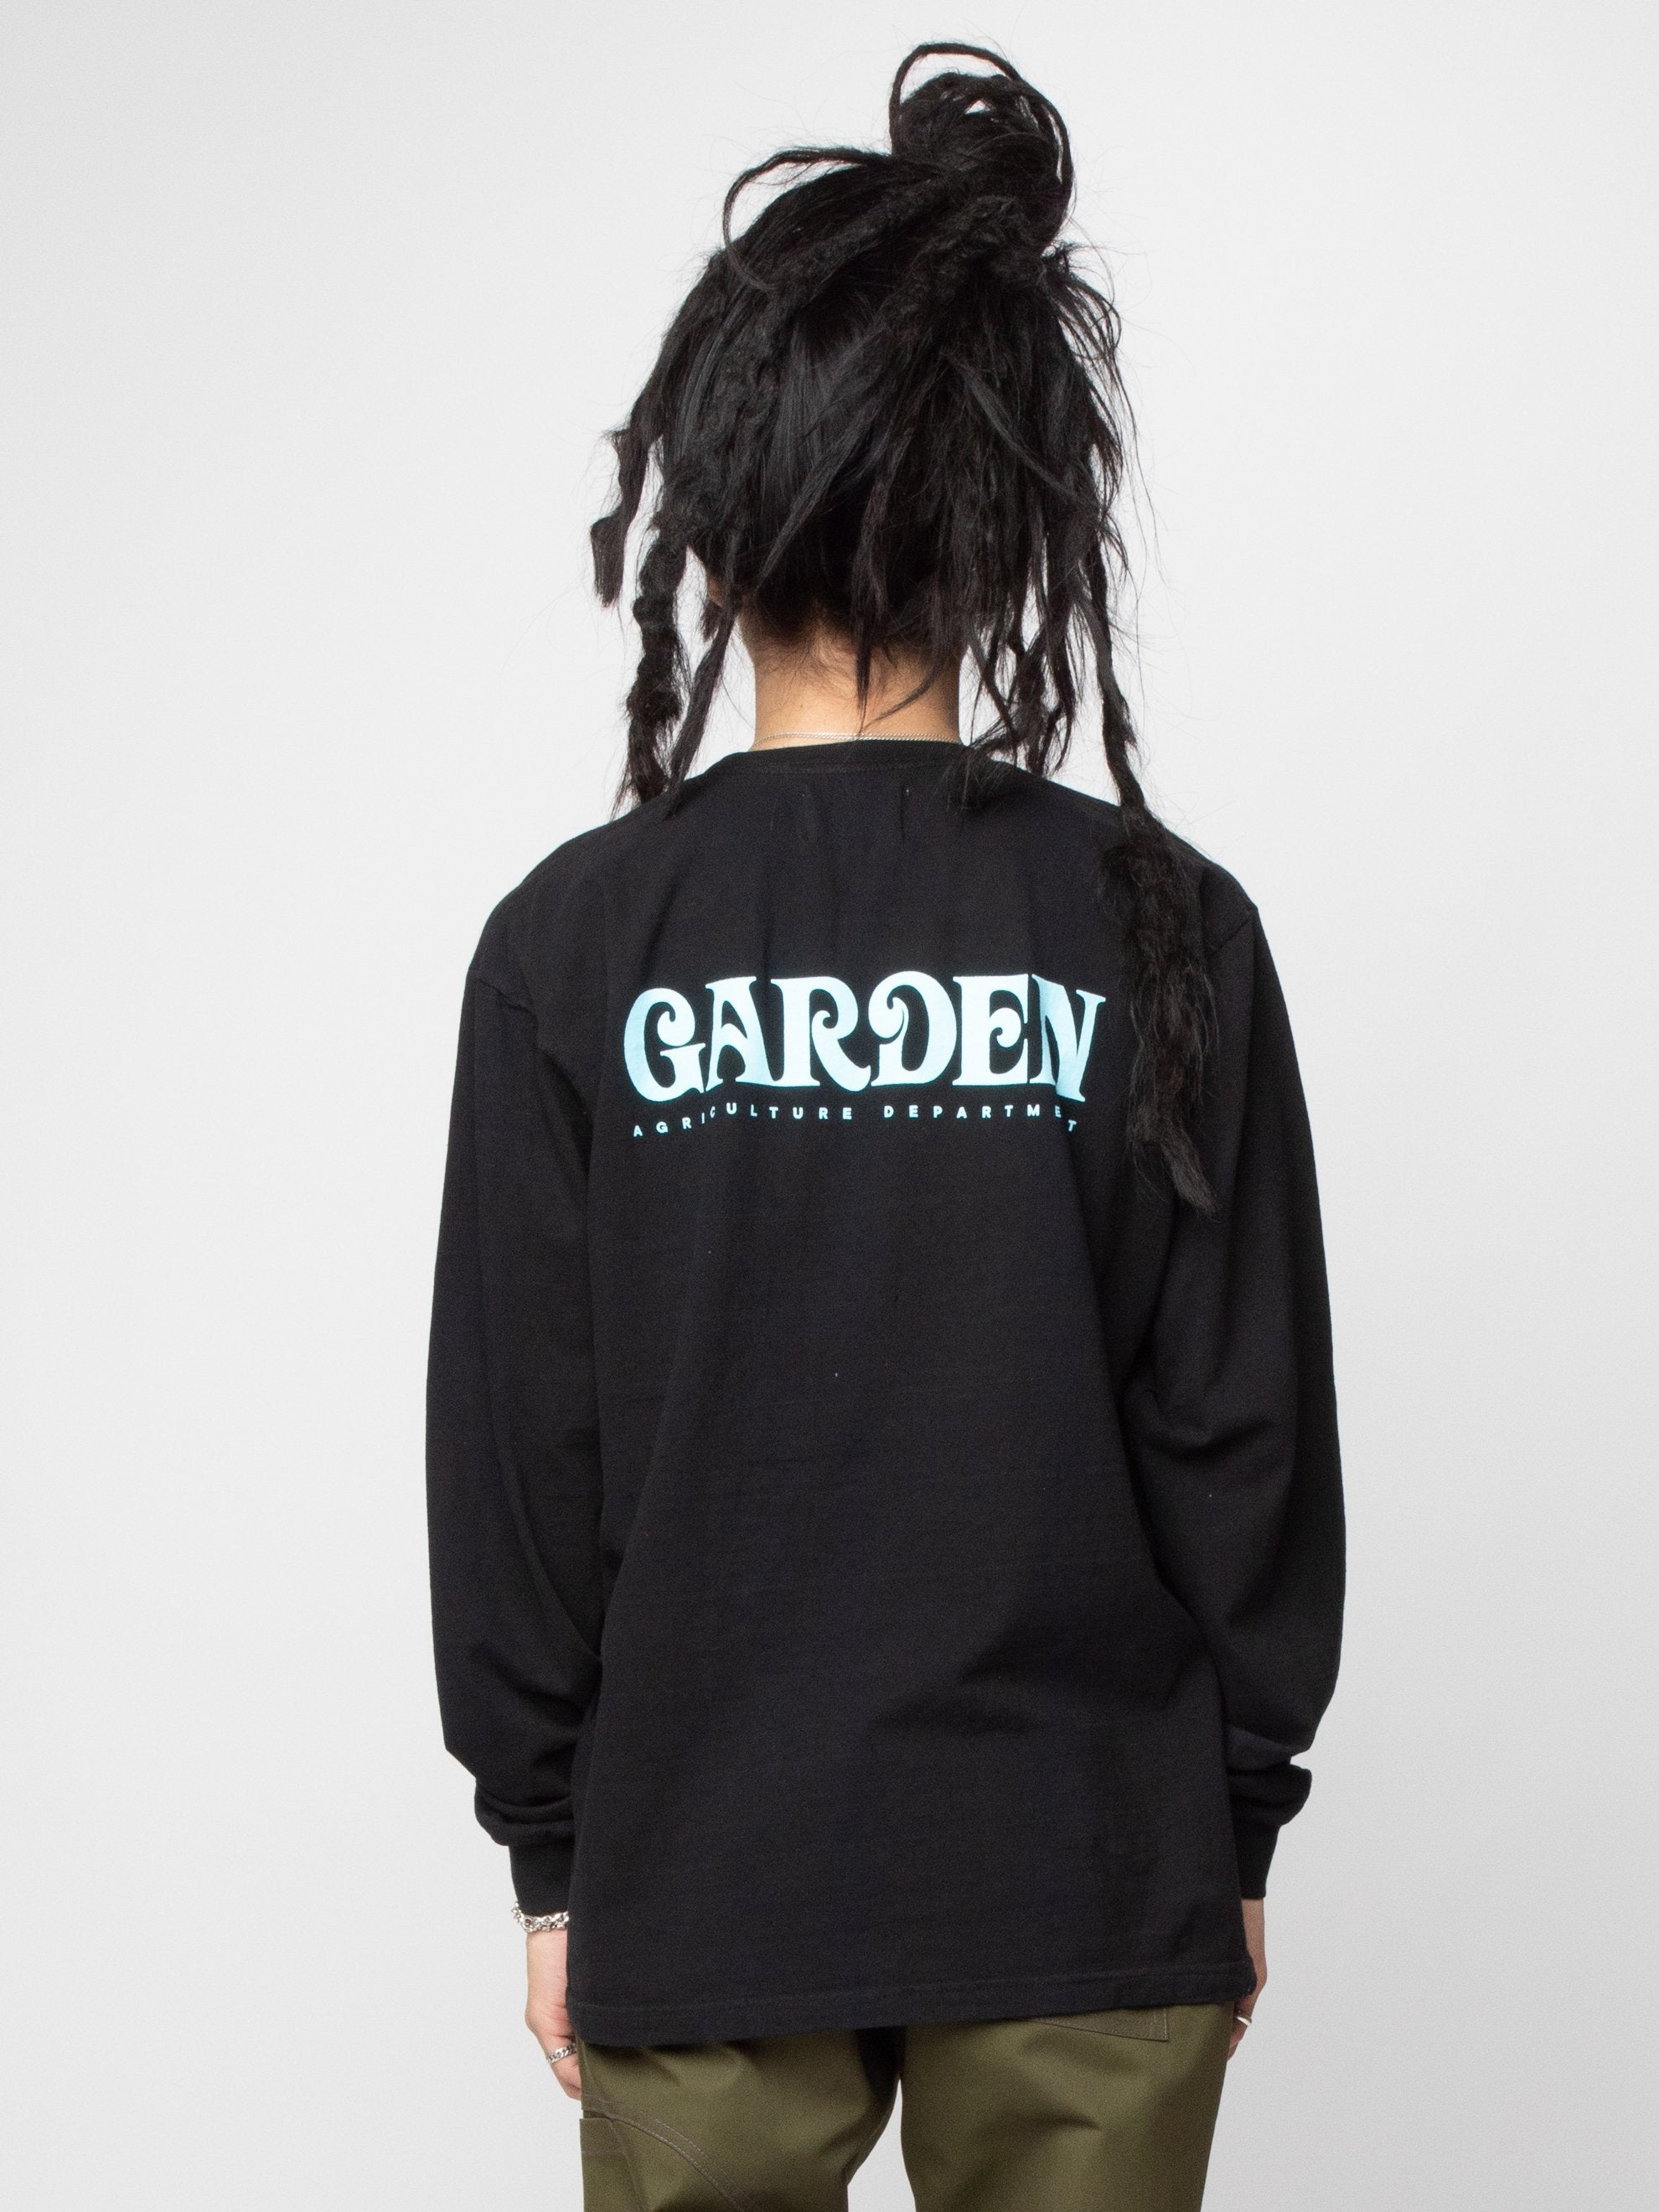 Garden Long Sleeve T-Shirt